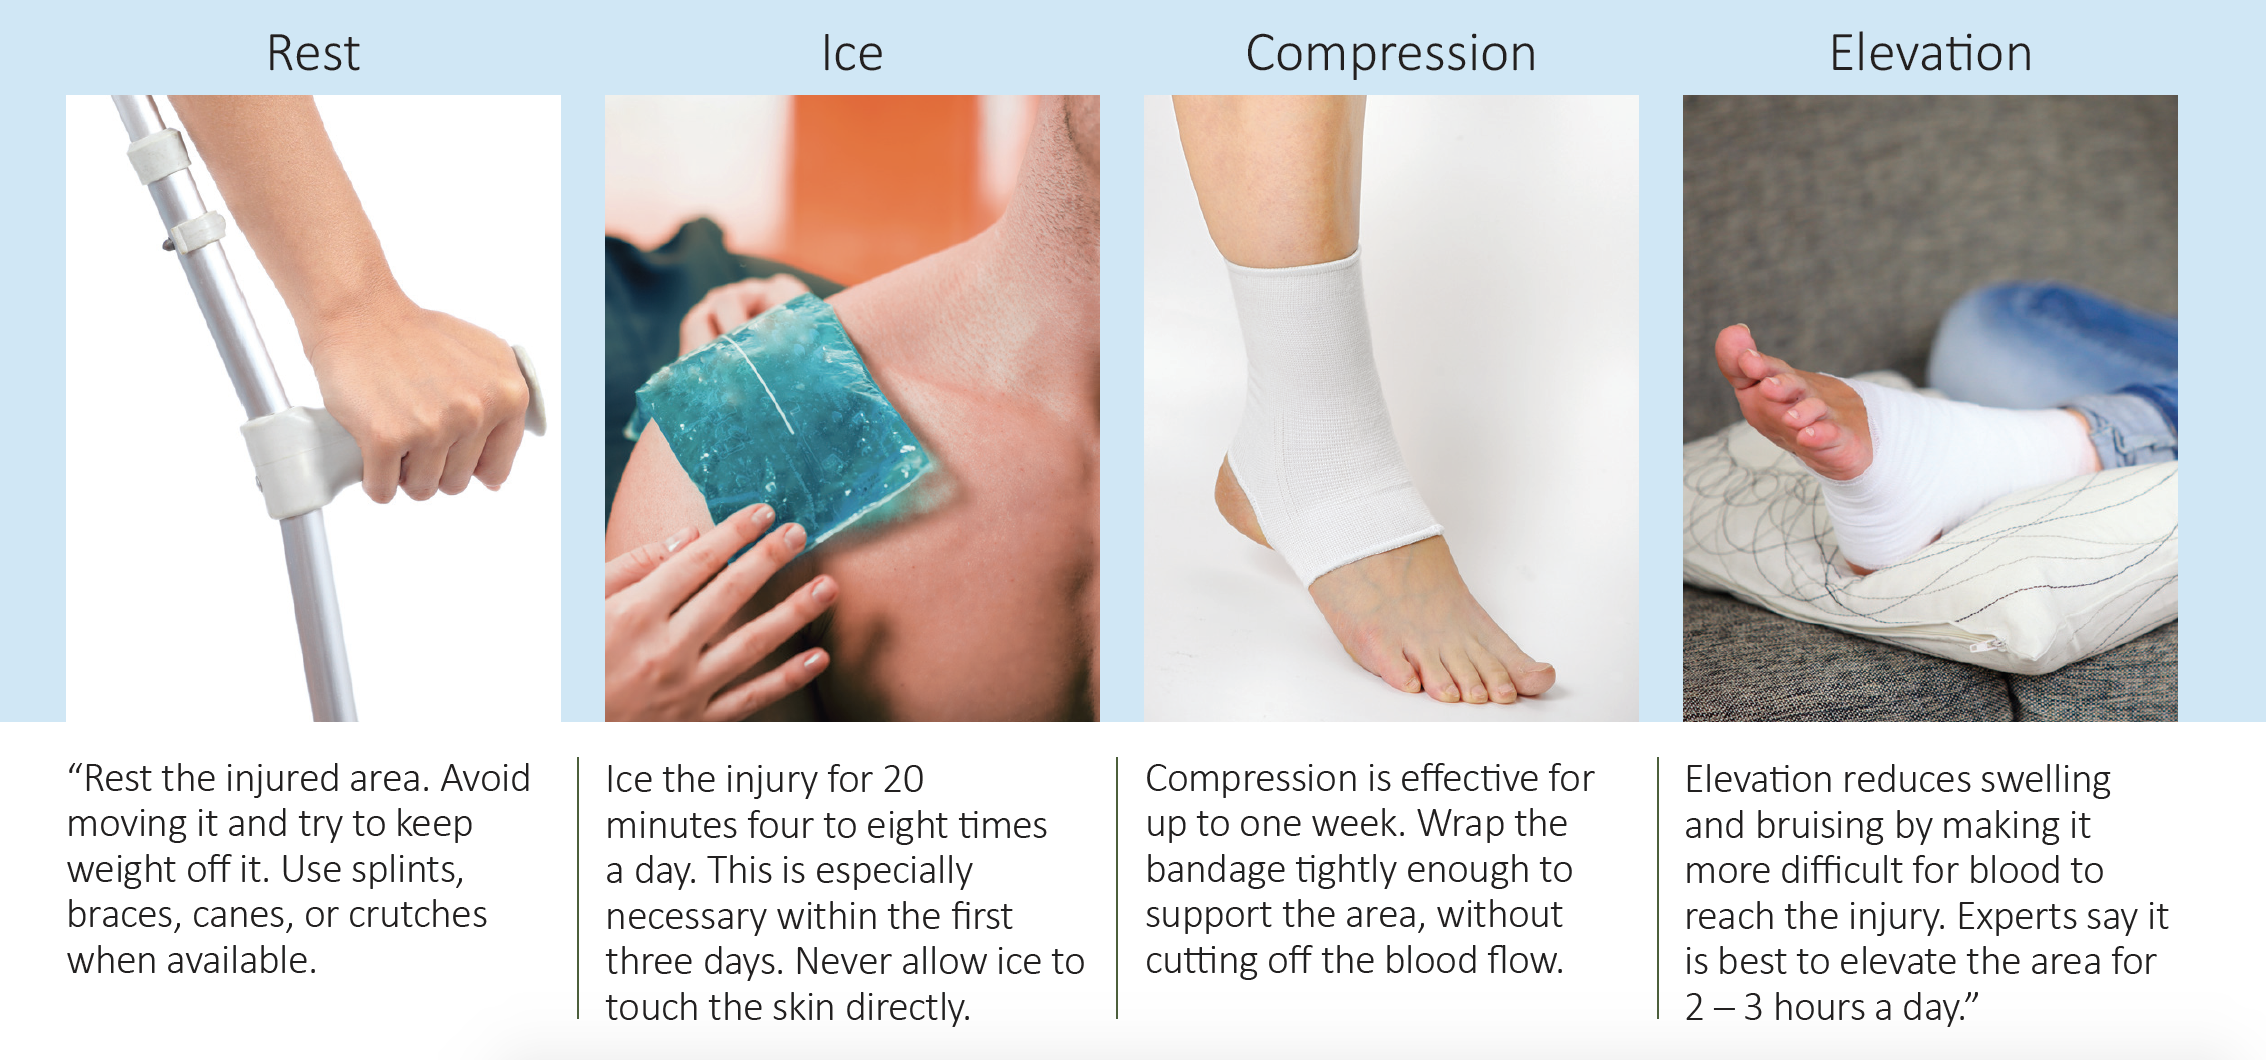 Rest, Ice, Compression, and elevation images of injury treatment